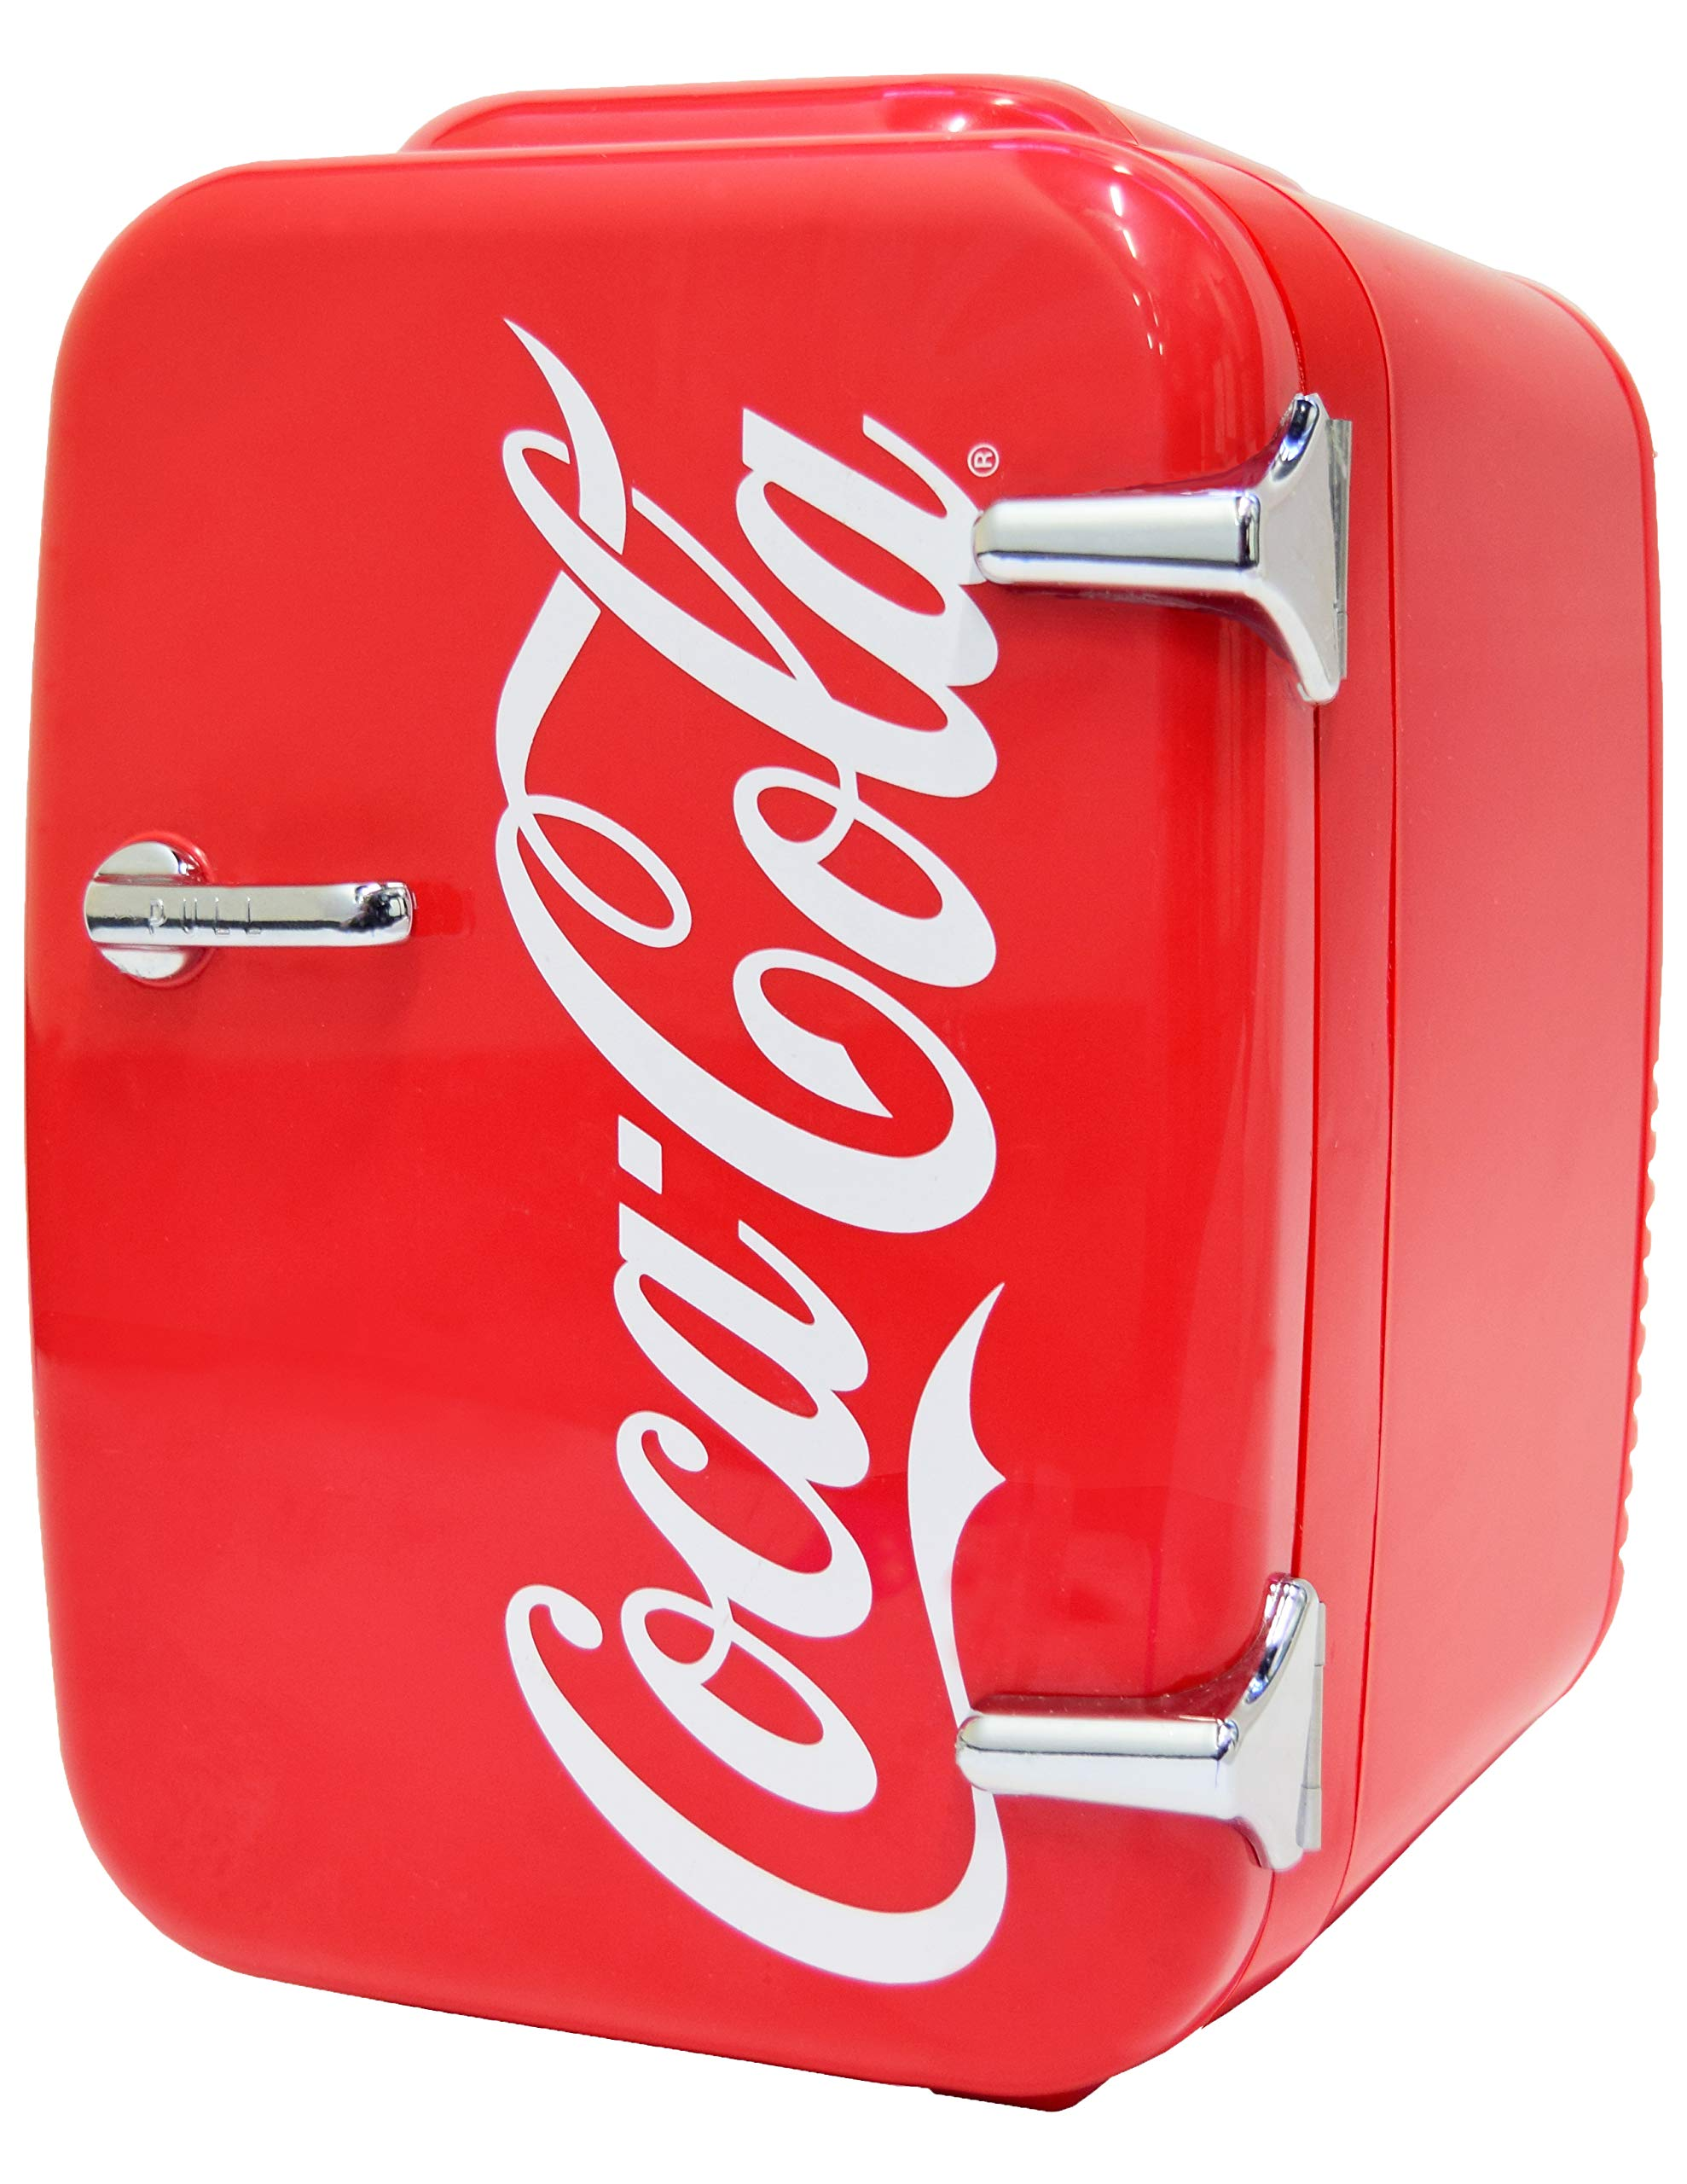 Coca-Cola Vintage Chic 4L Cooler/Warmer Mini Fridge by Cooluli for Cars, Road Trips, Homes, Offices and Dorms (110V/12V) by Cooluli